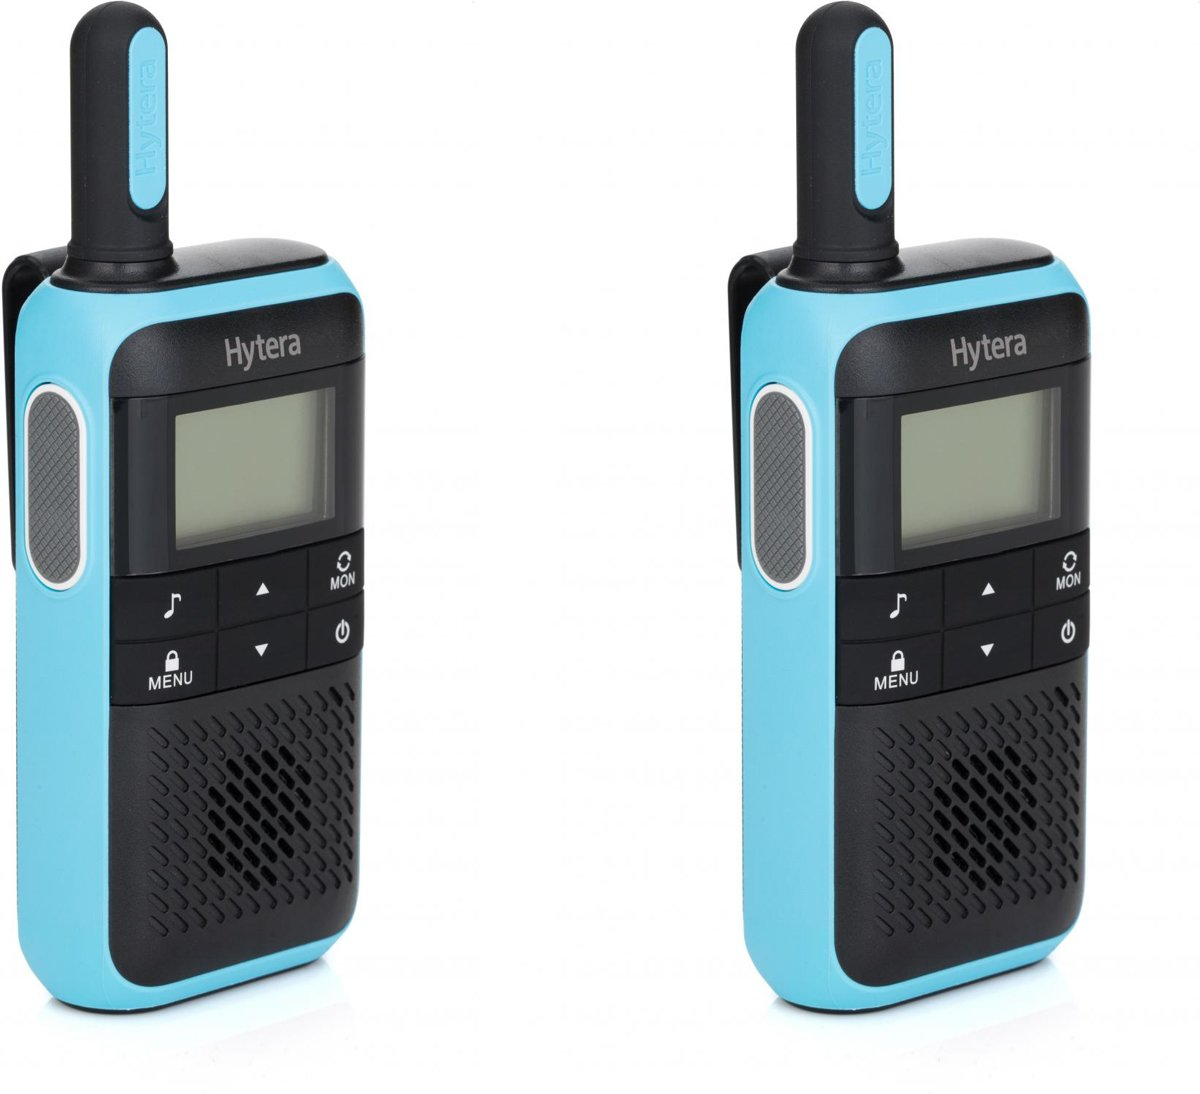 Hytera TF415 PMR446 Walkie-Talkie Duo Set